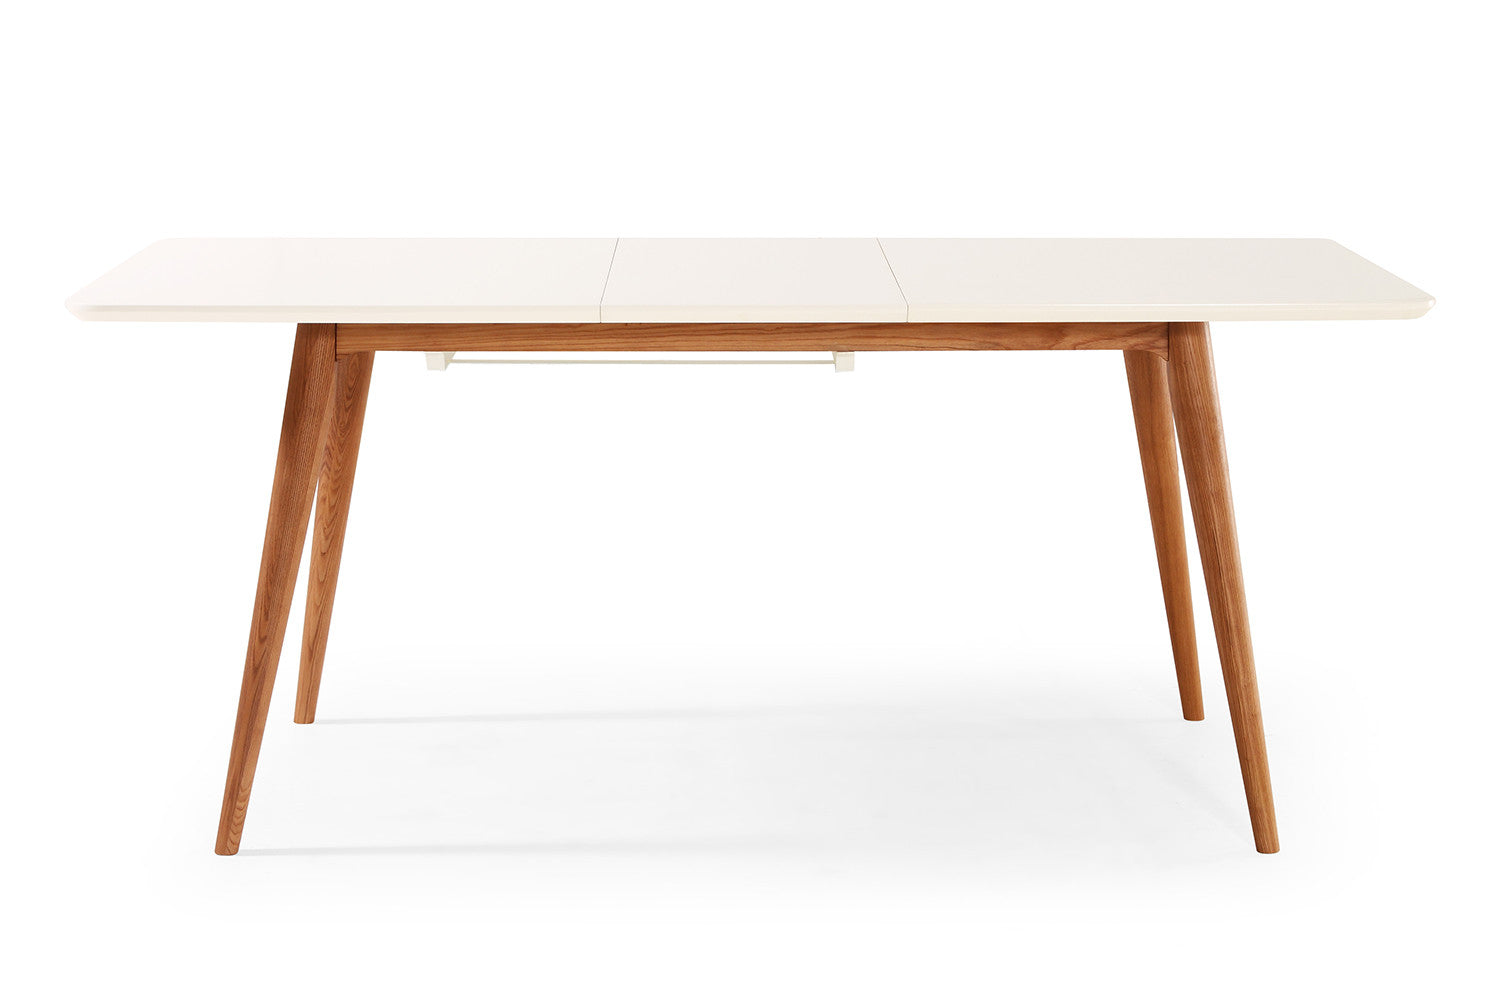 Table de salle manger extensible scandinave wyna dewarens for Table scandinave extensible